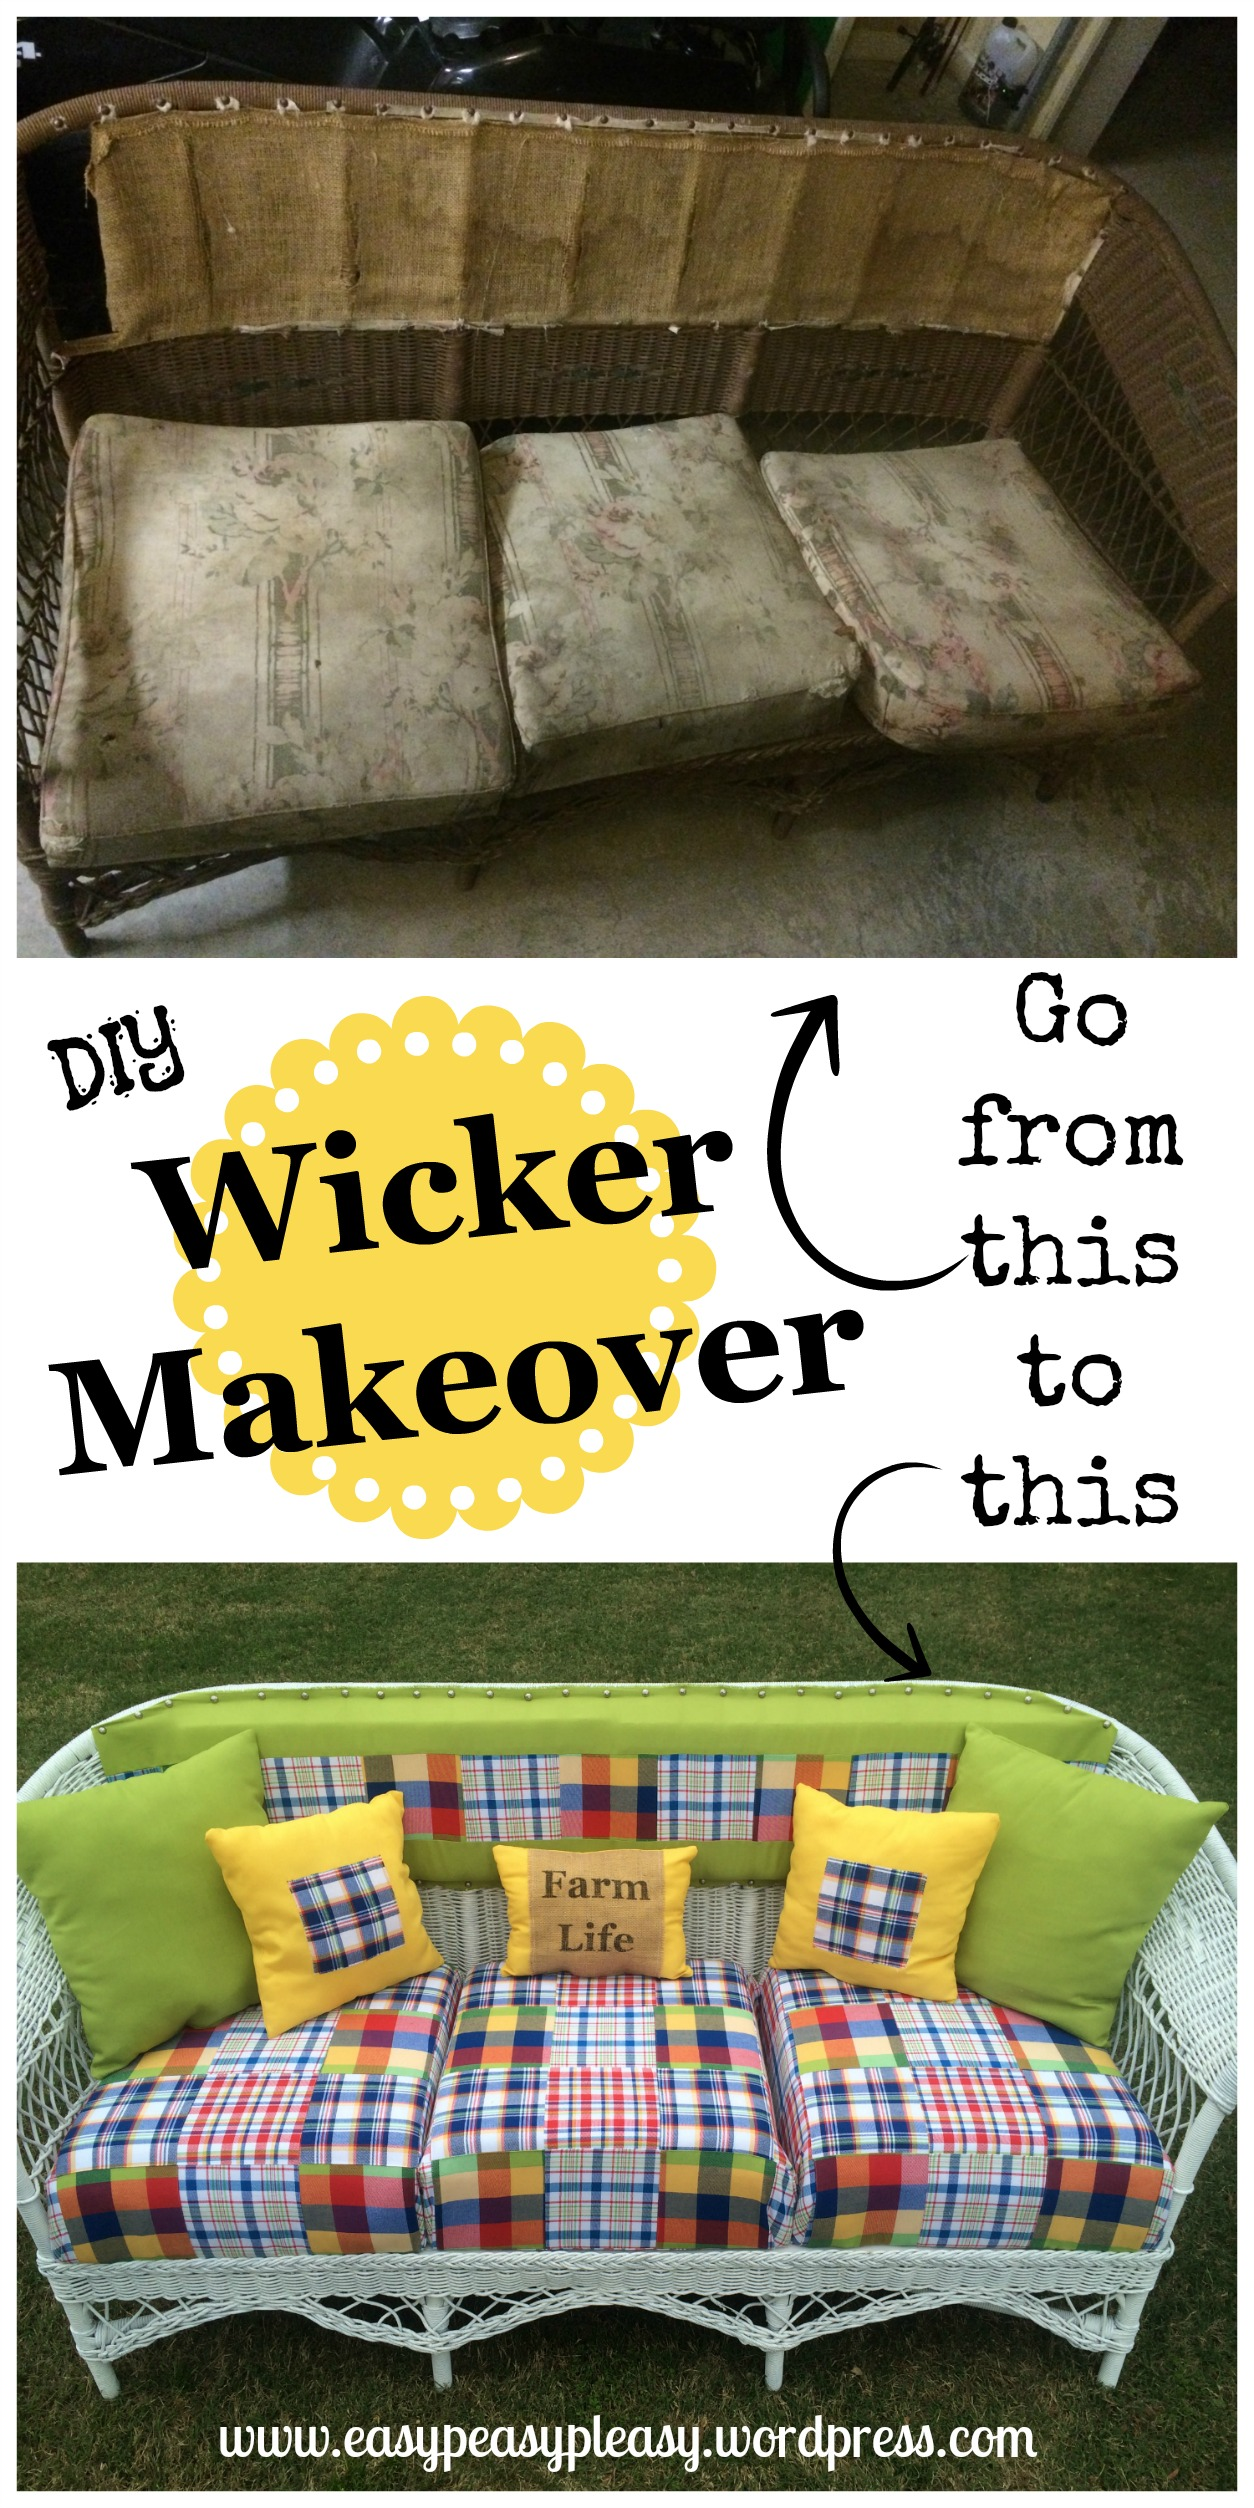 DIY Wicker Makeover and tutorial to make wicker look like new